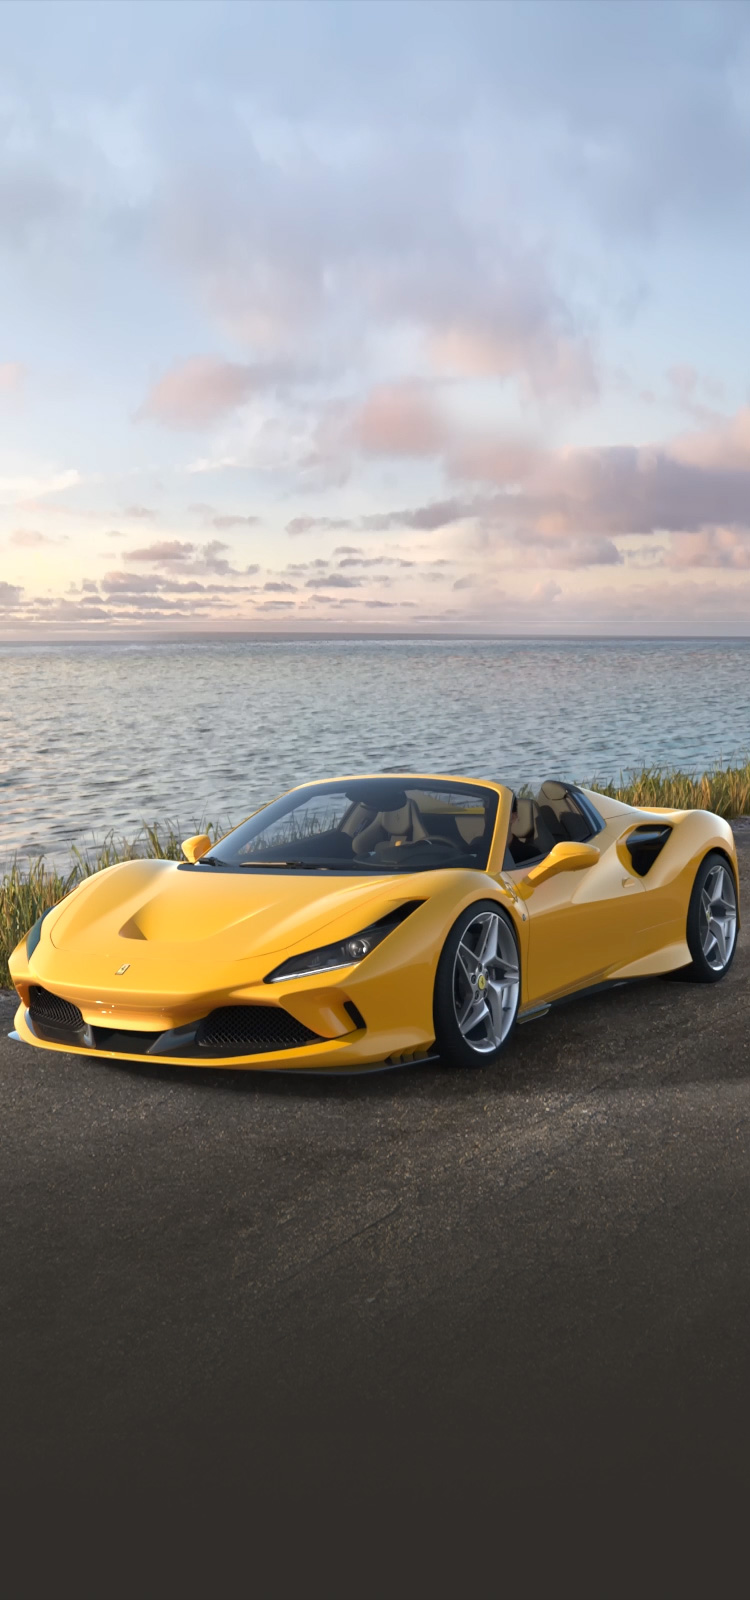 Ferrari F8 Spider: the evolution of the species - Ferrari.com